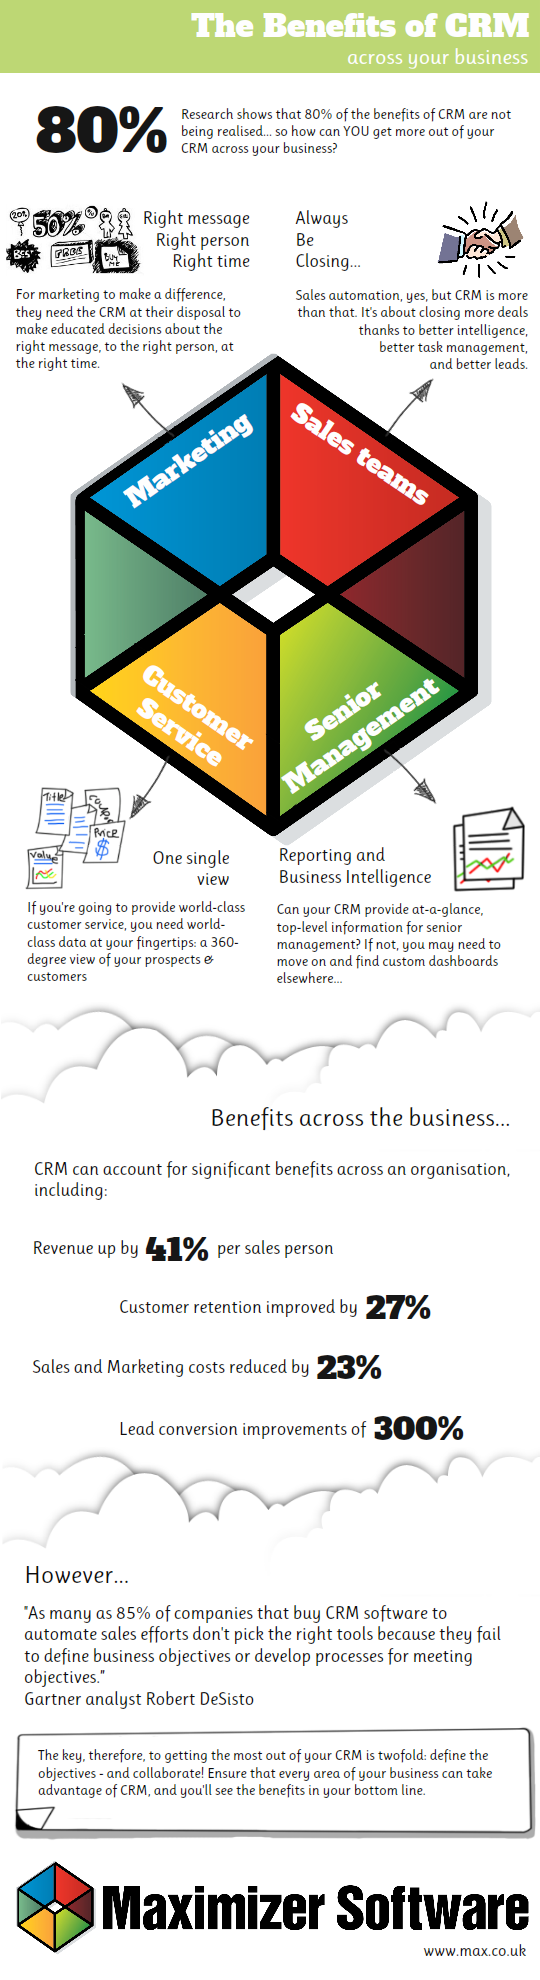 Want to know more about CRM for marketing? Read Maximizer...